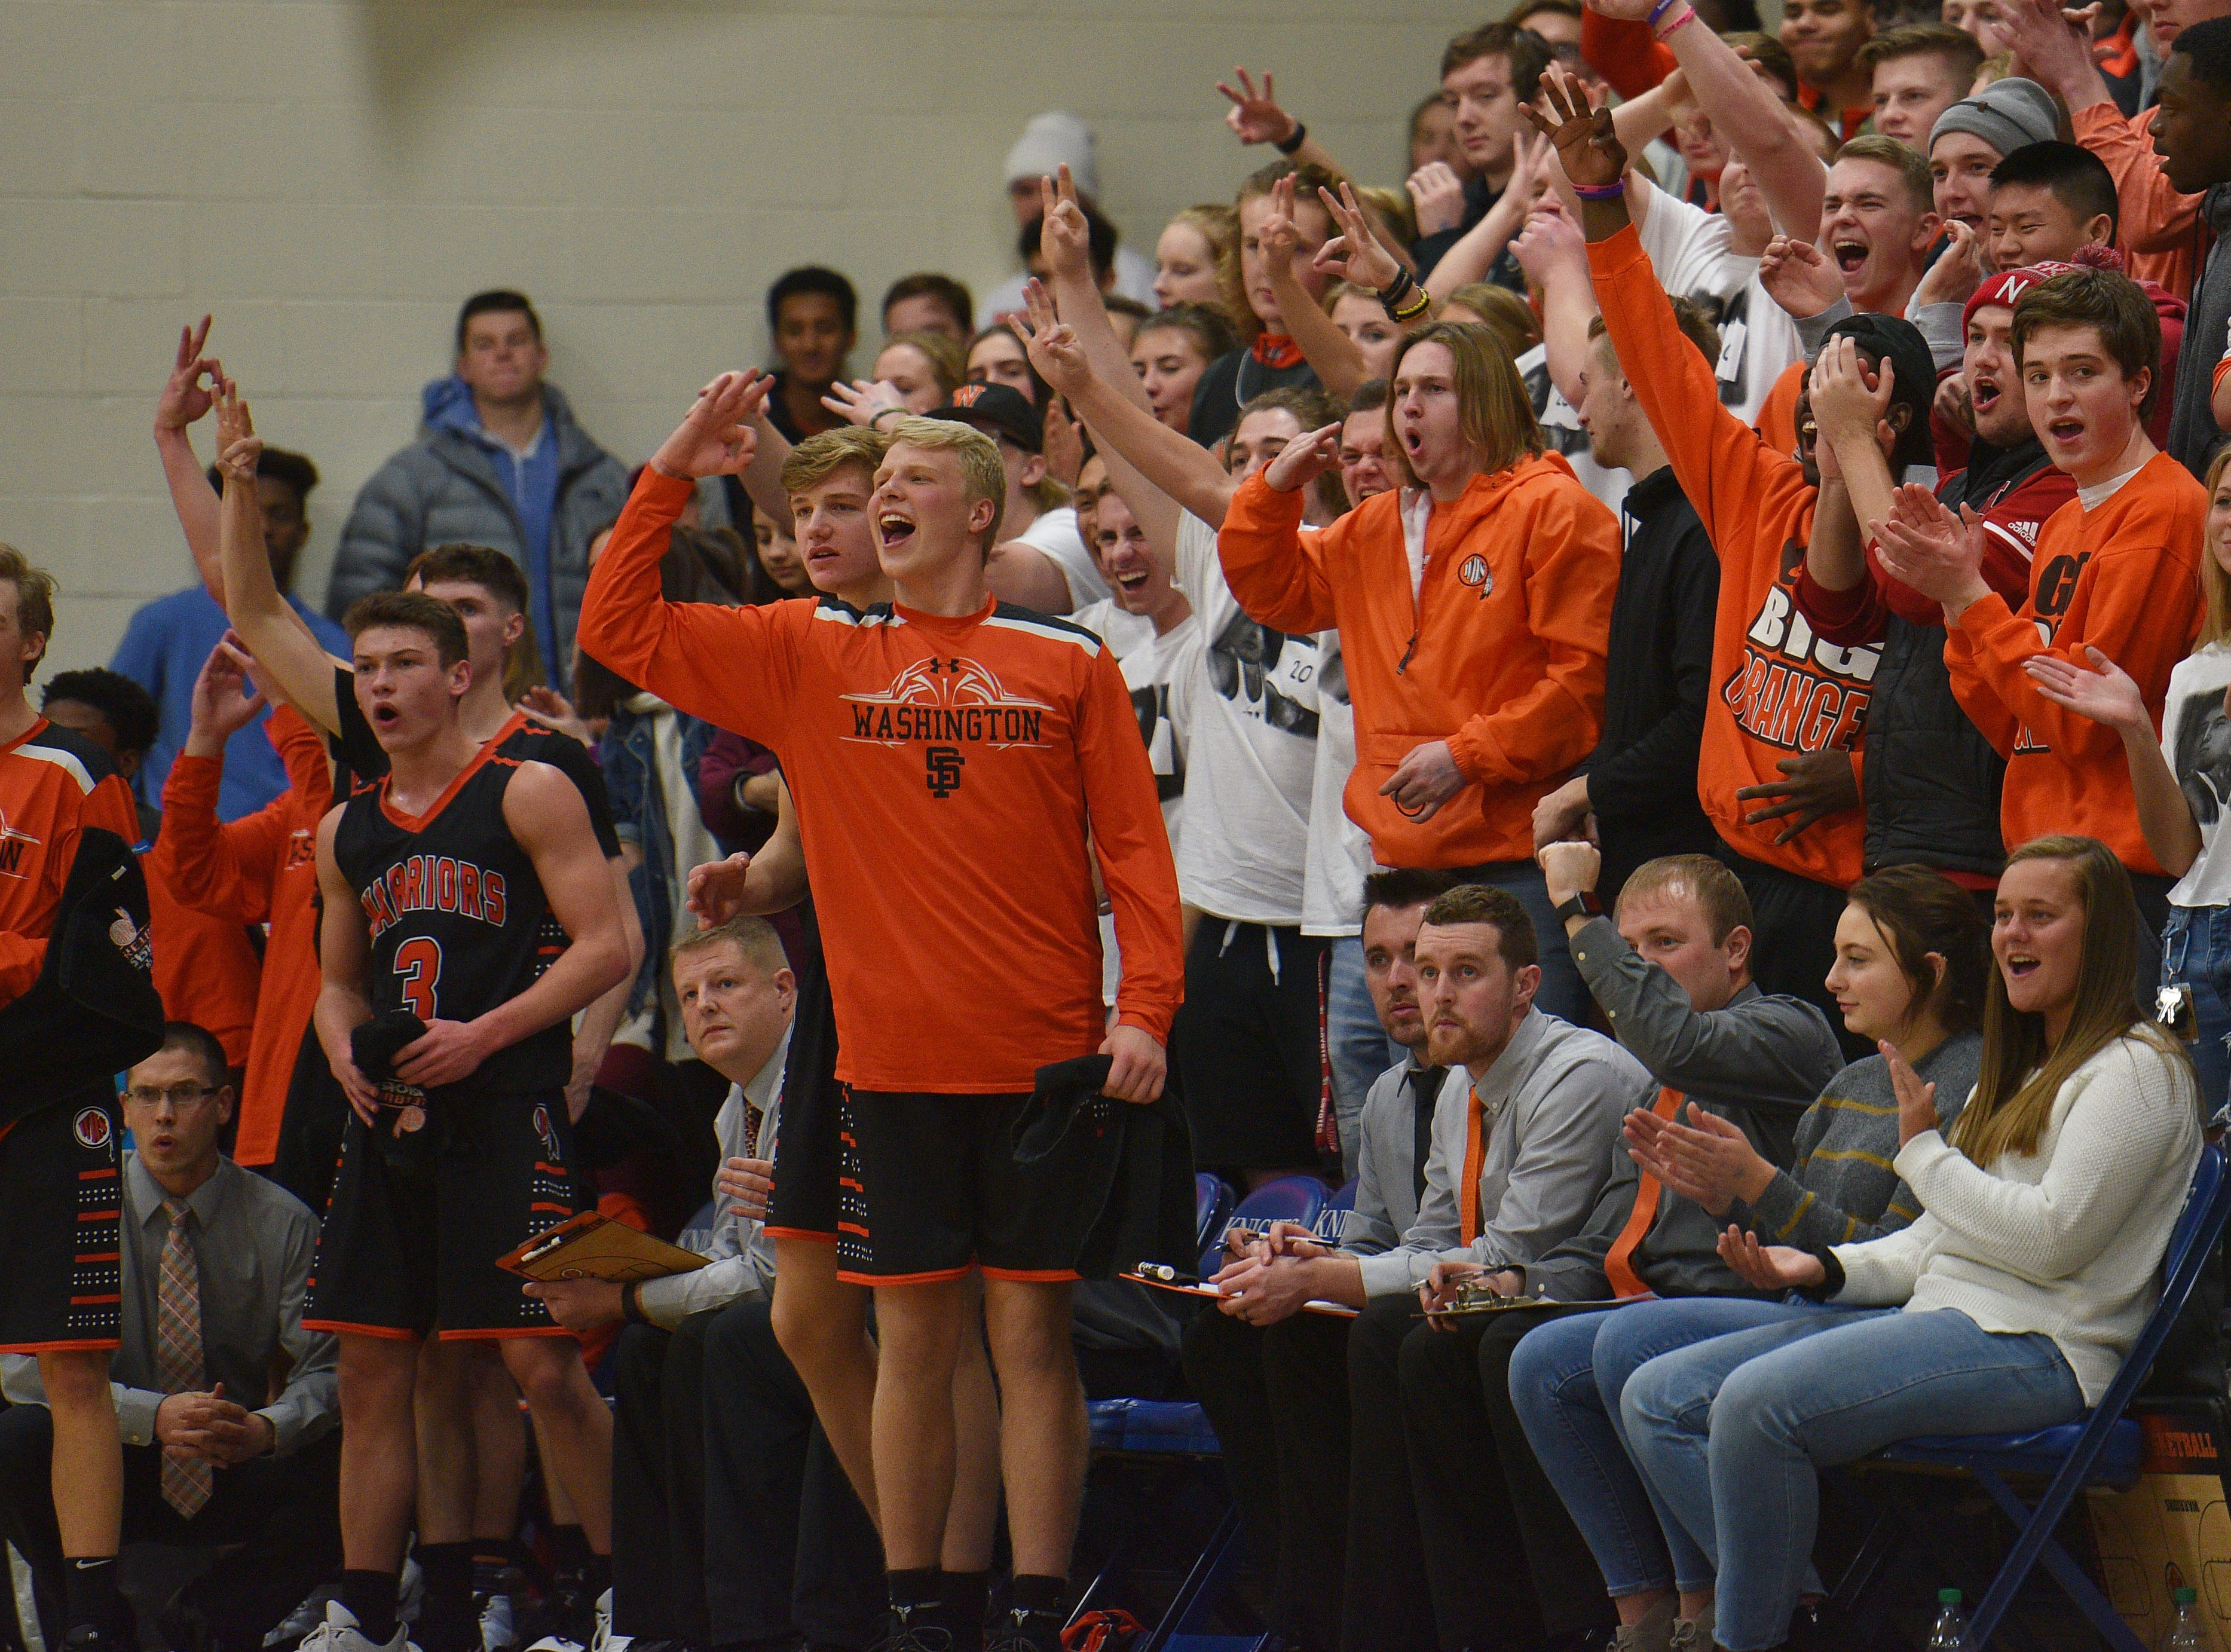 Washington's student section cheers during the game against O'Gorman Thursday, Jan. 10, at O'Gorman in Sioux Falls.